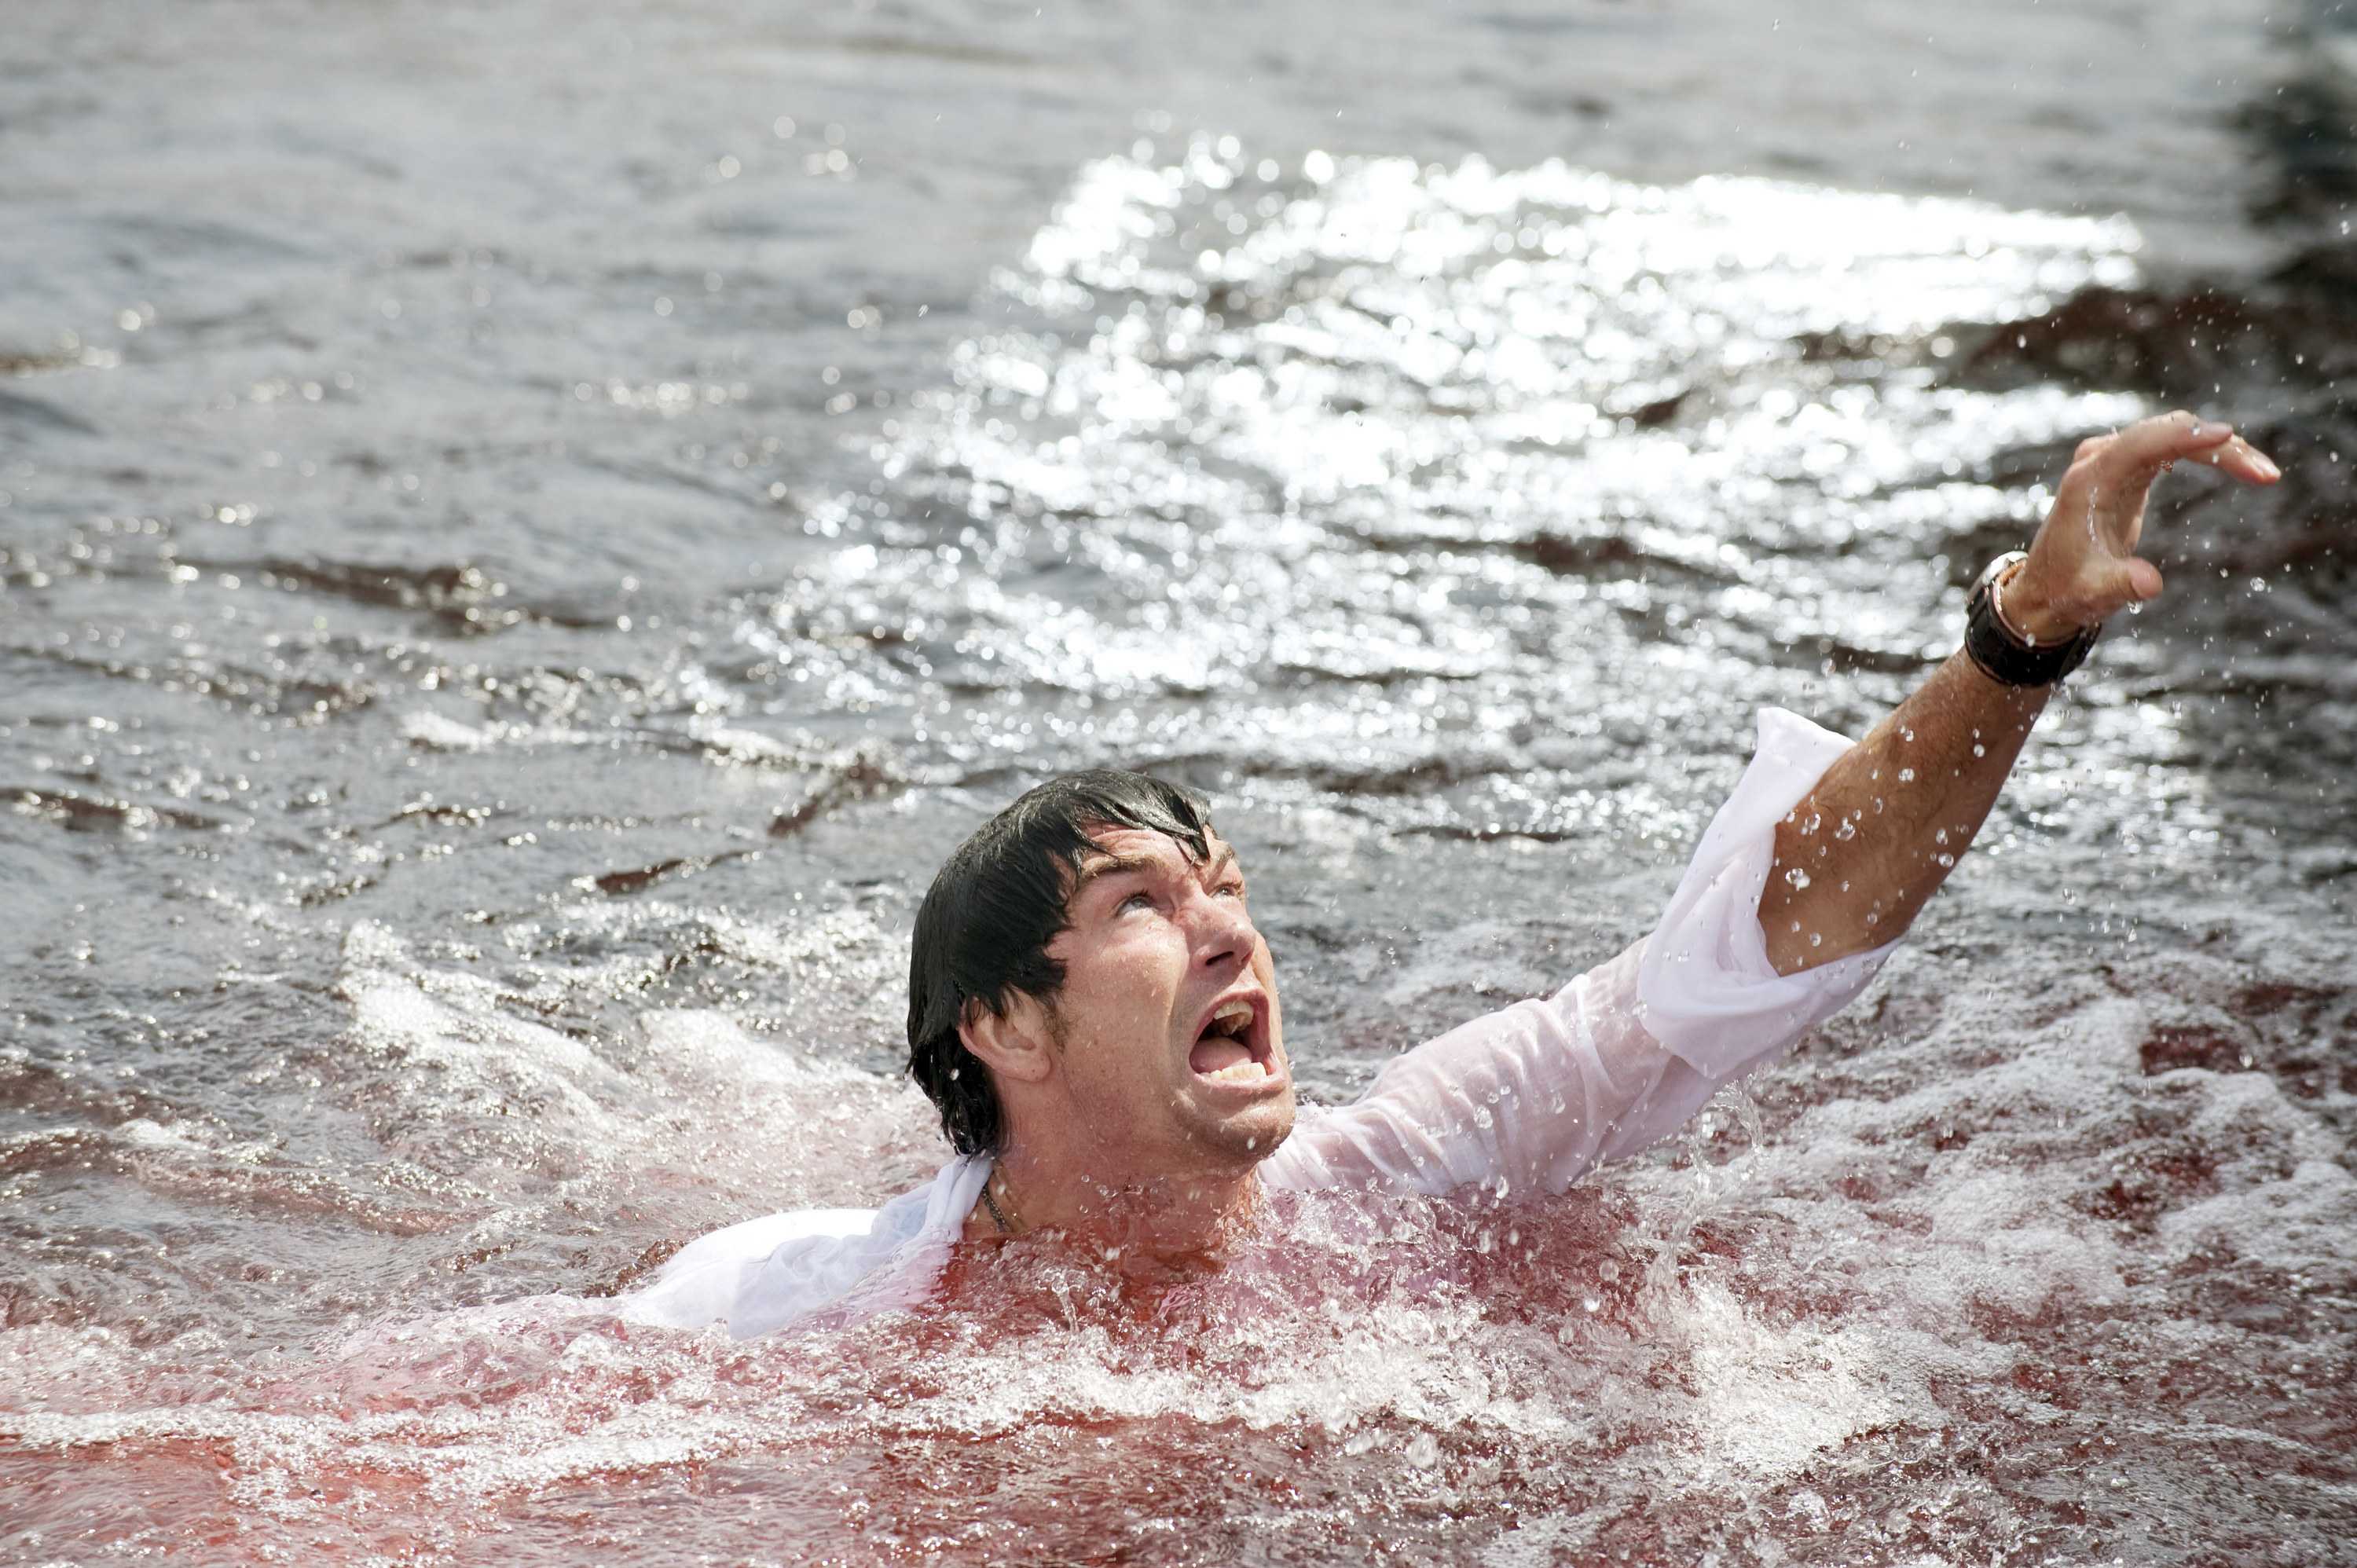 Jerry O'Connell swims in bloody water